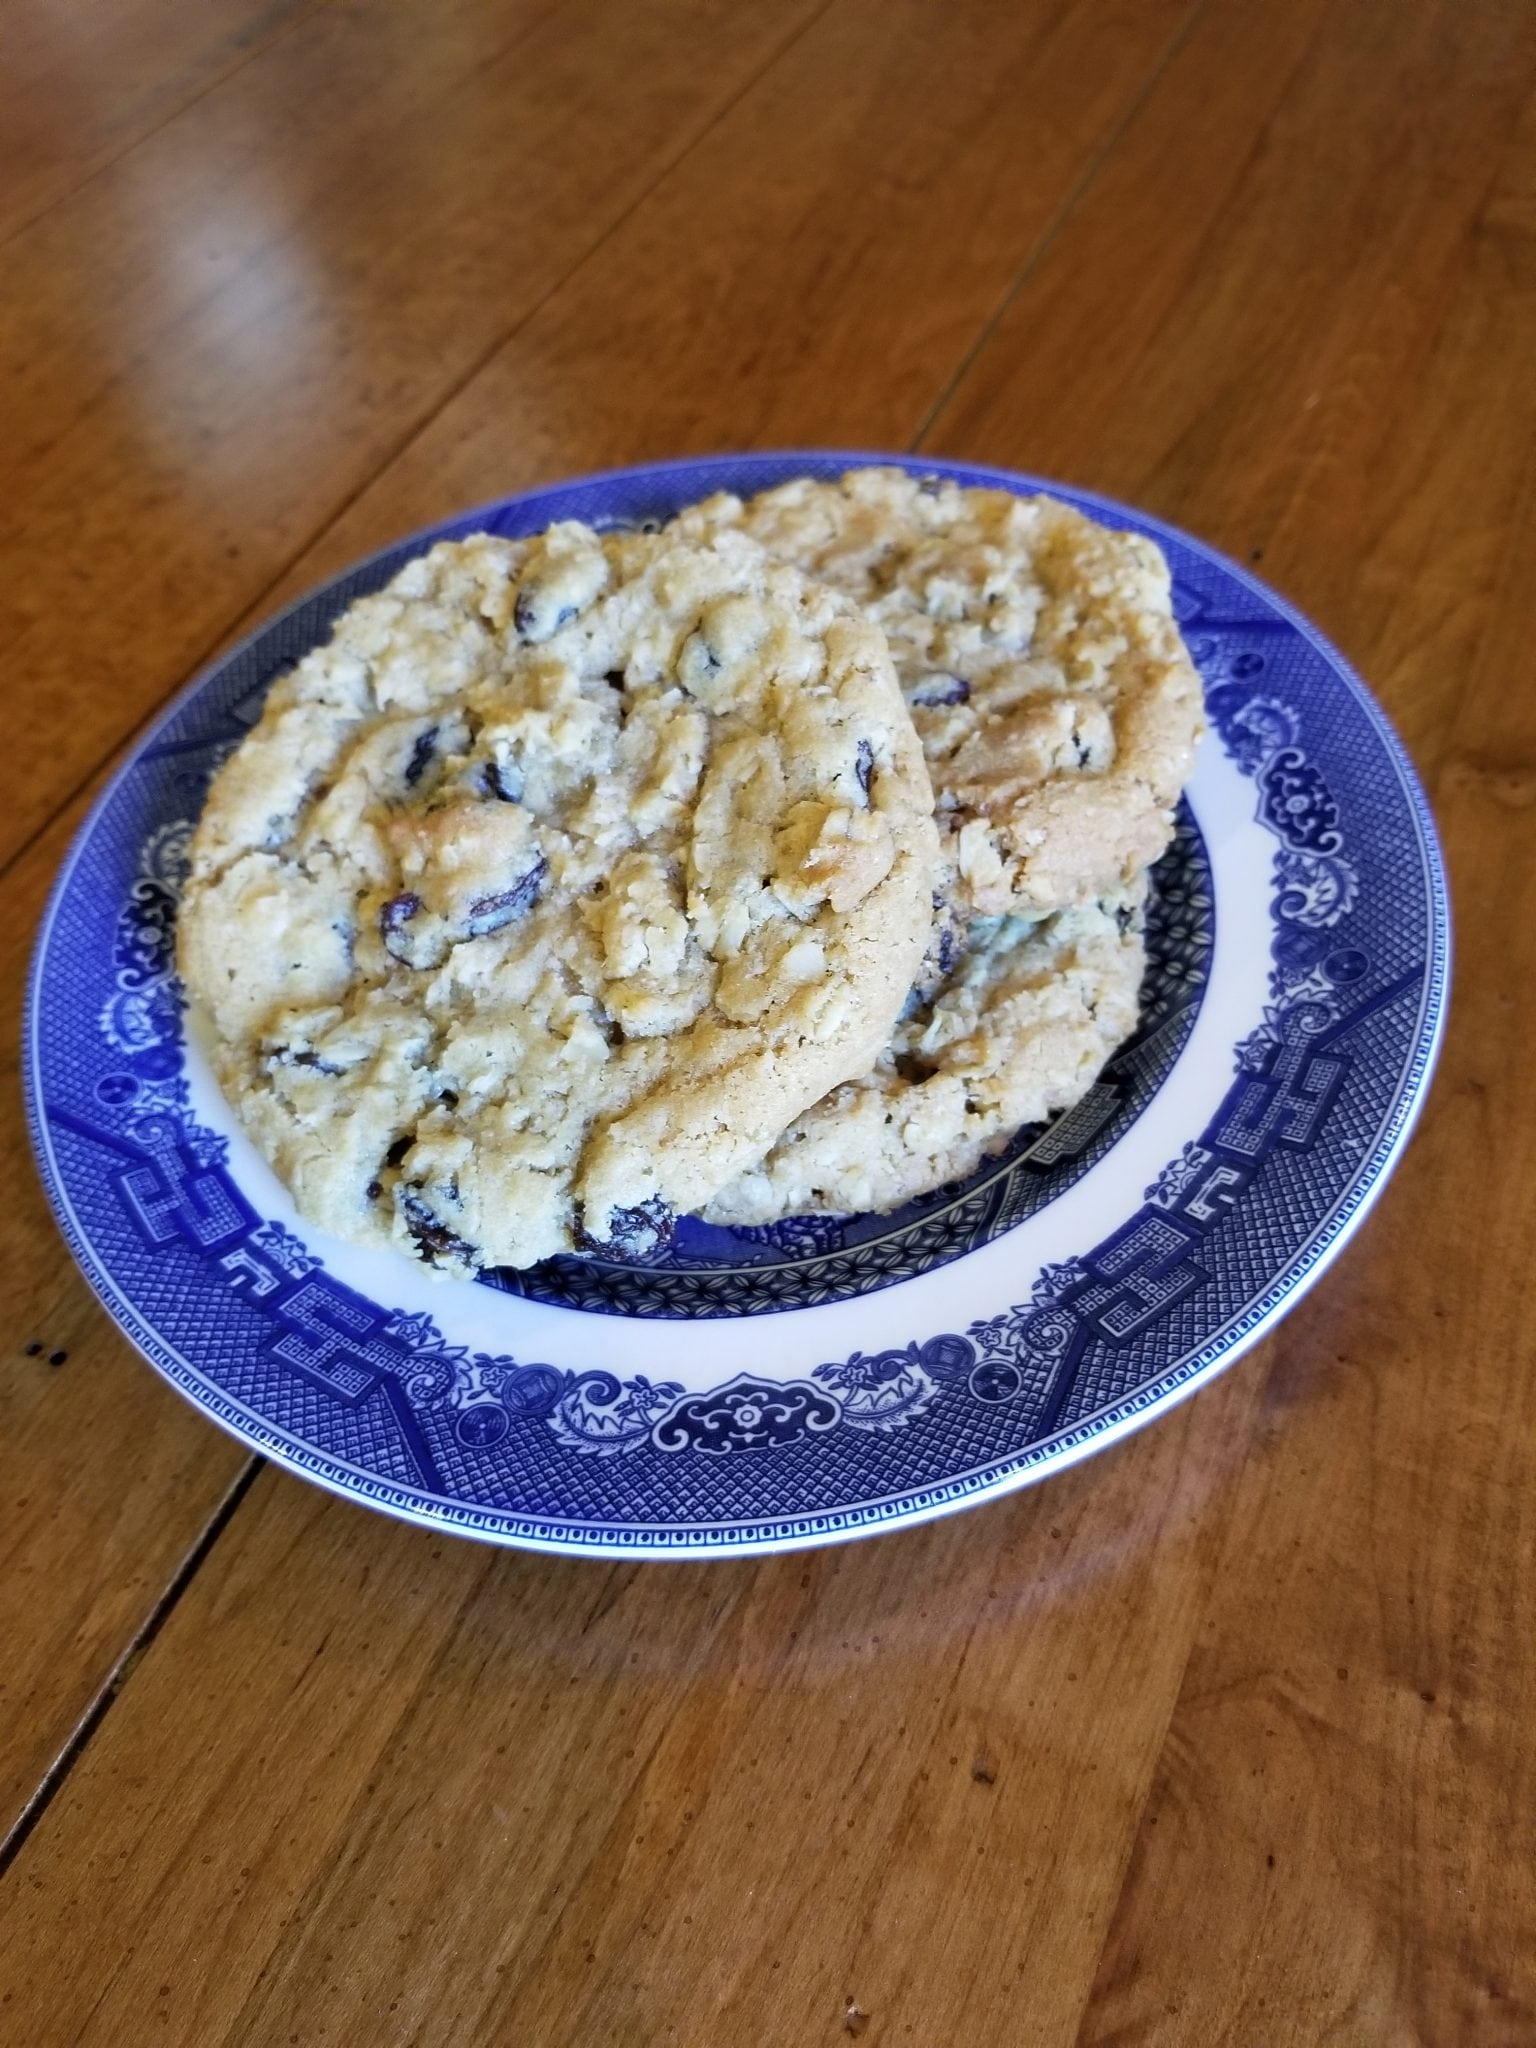 Picture Simply Good Oatmeal Raisin Cookie